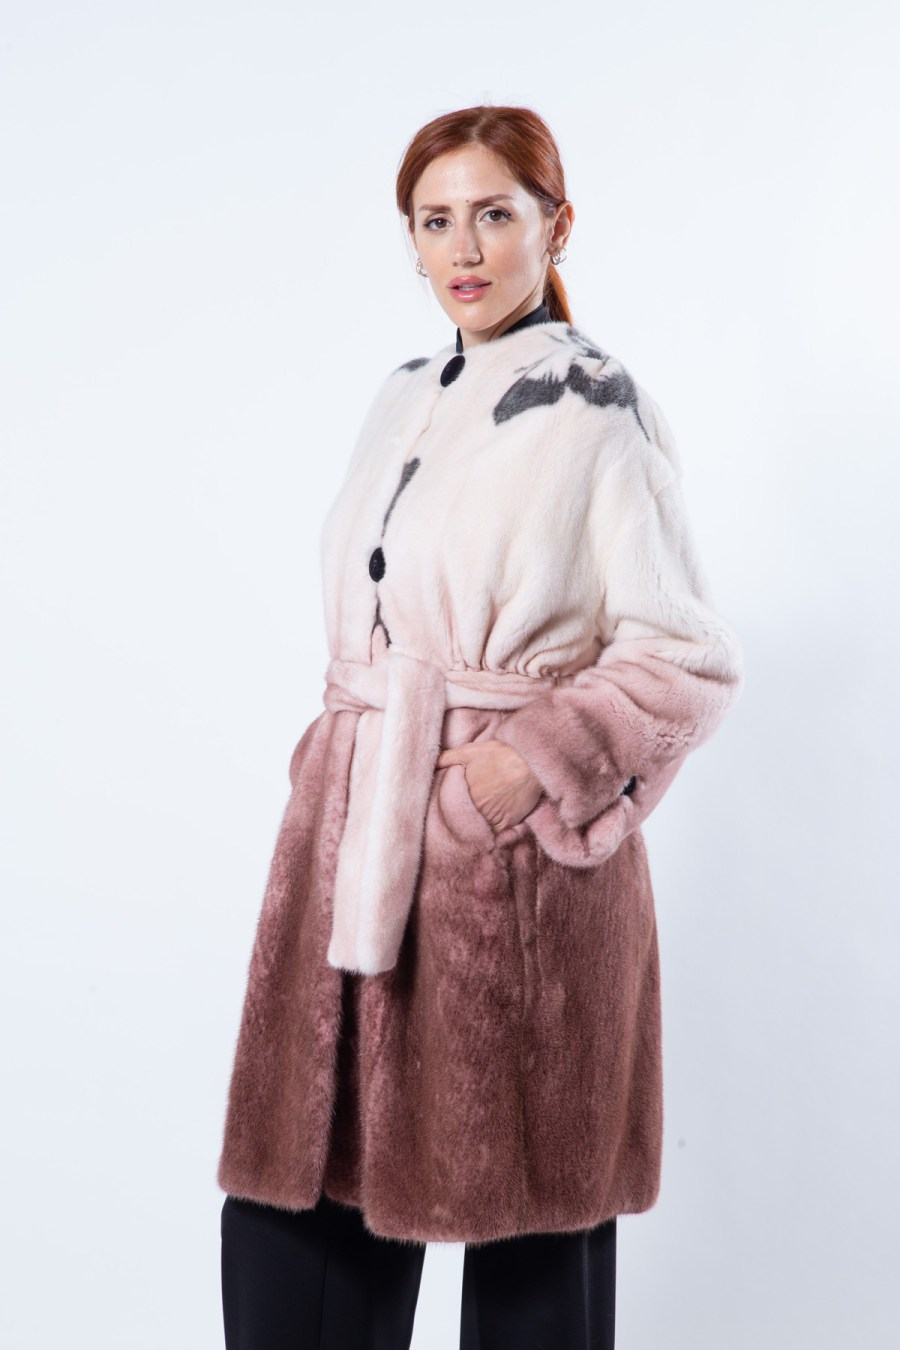 Bordeaux Degrade Mink Jacket with Butterfly Print | Sarigianni Furs